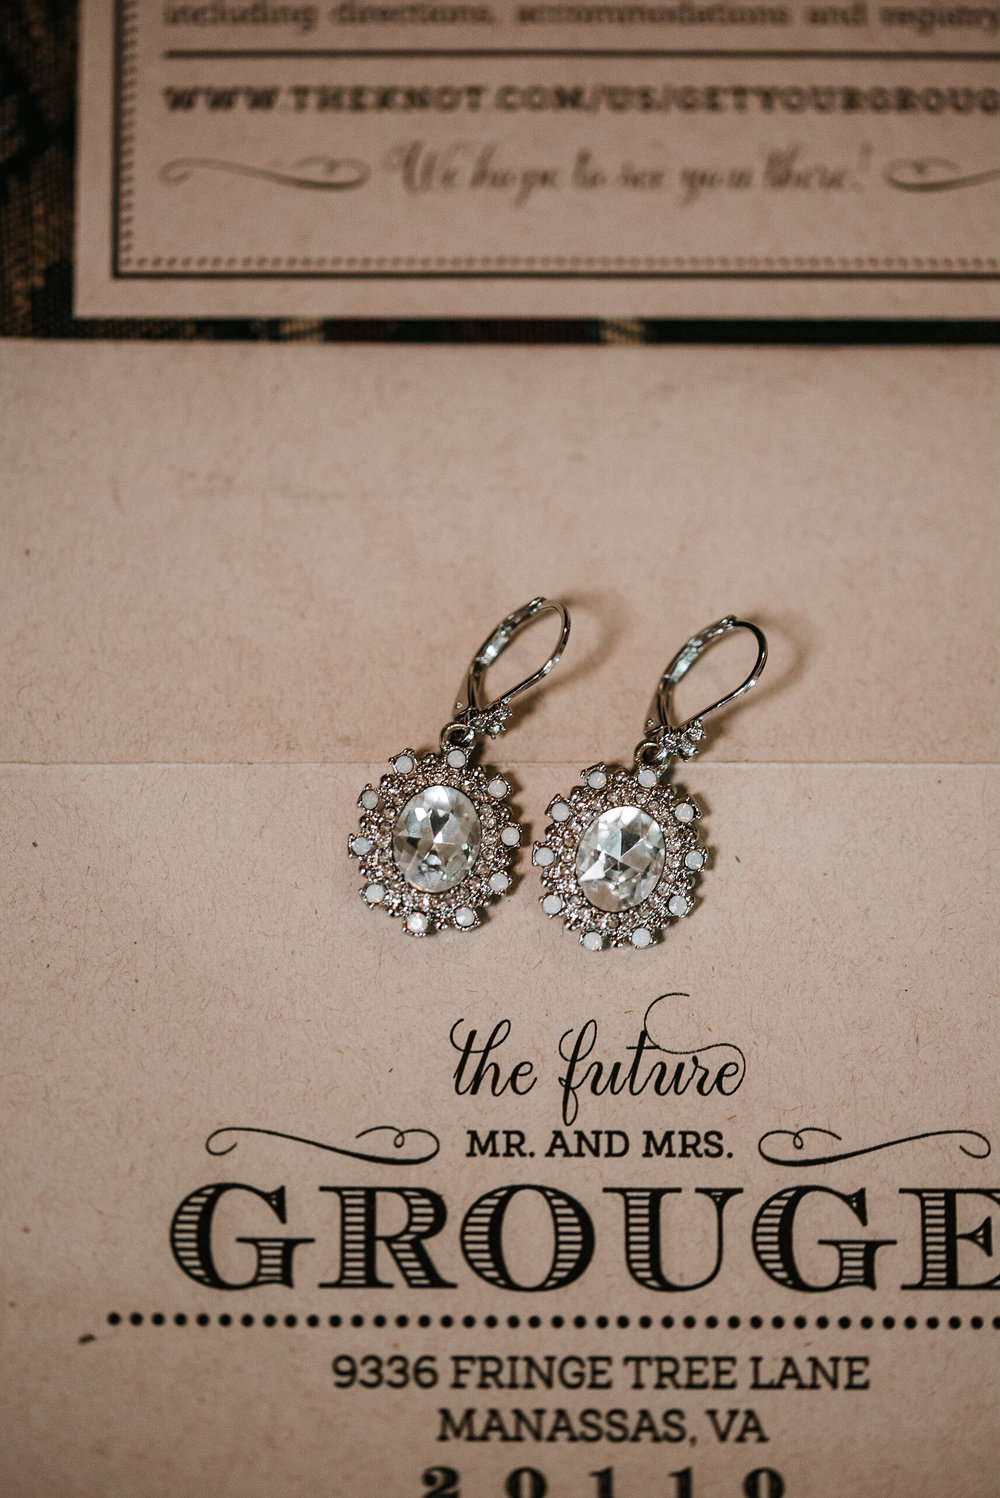 Wedding invitation with earrings